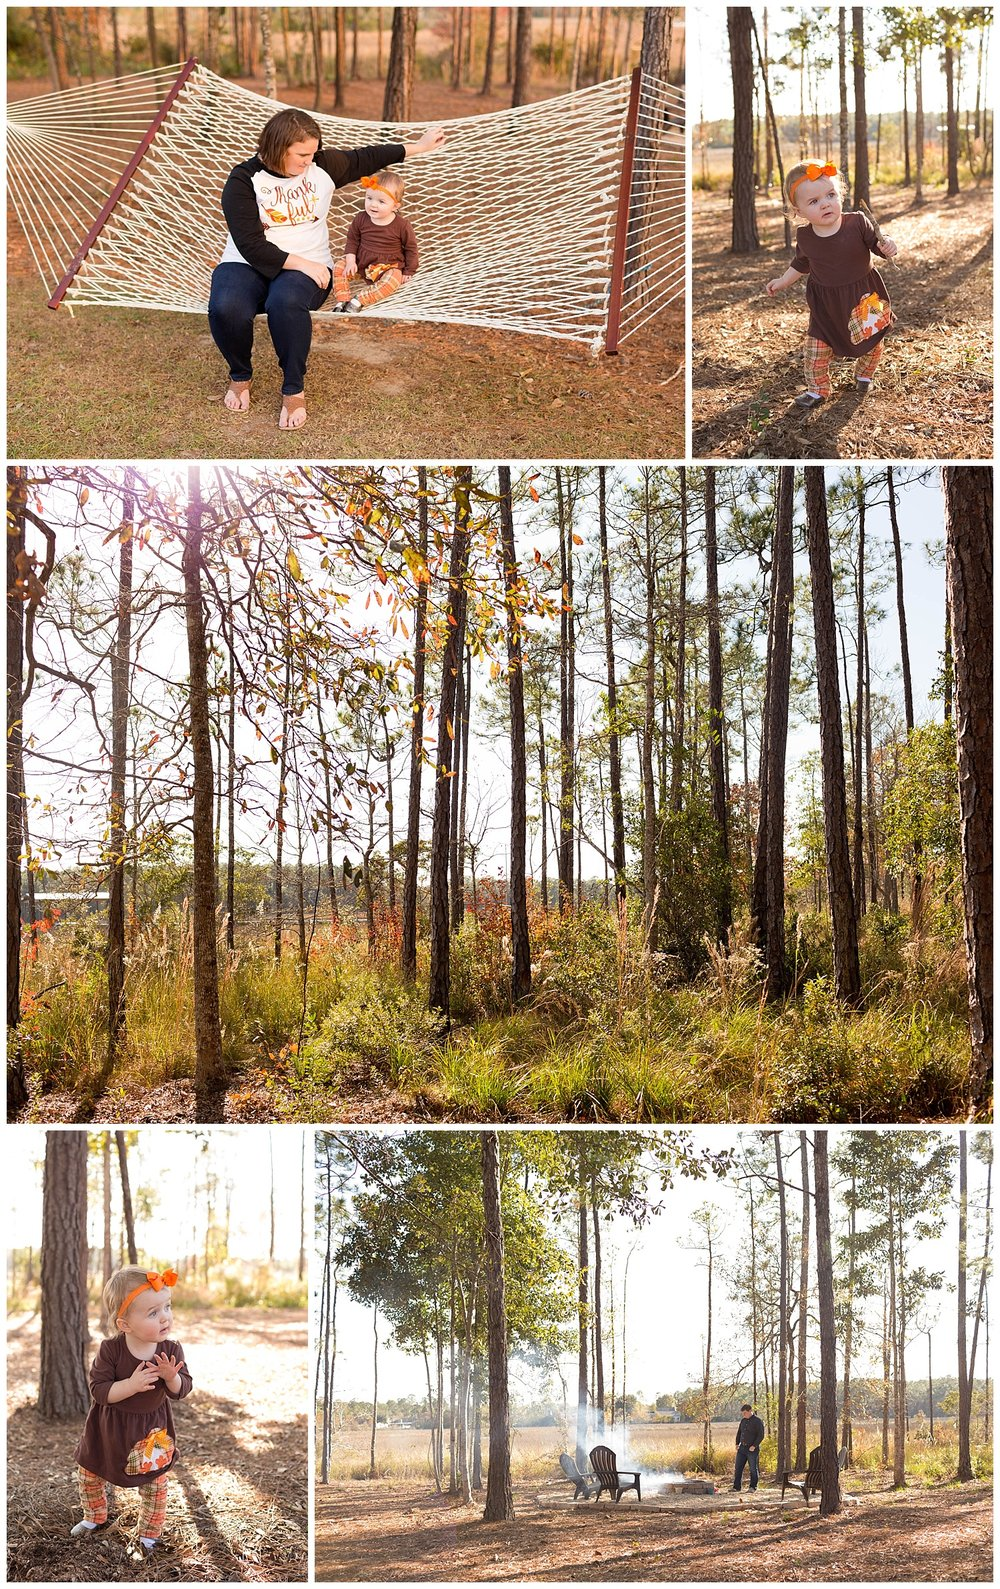 Thanksgiving Day with ire pit, hammock, woods